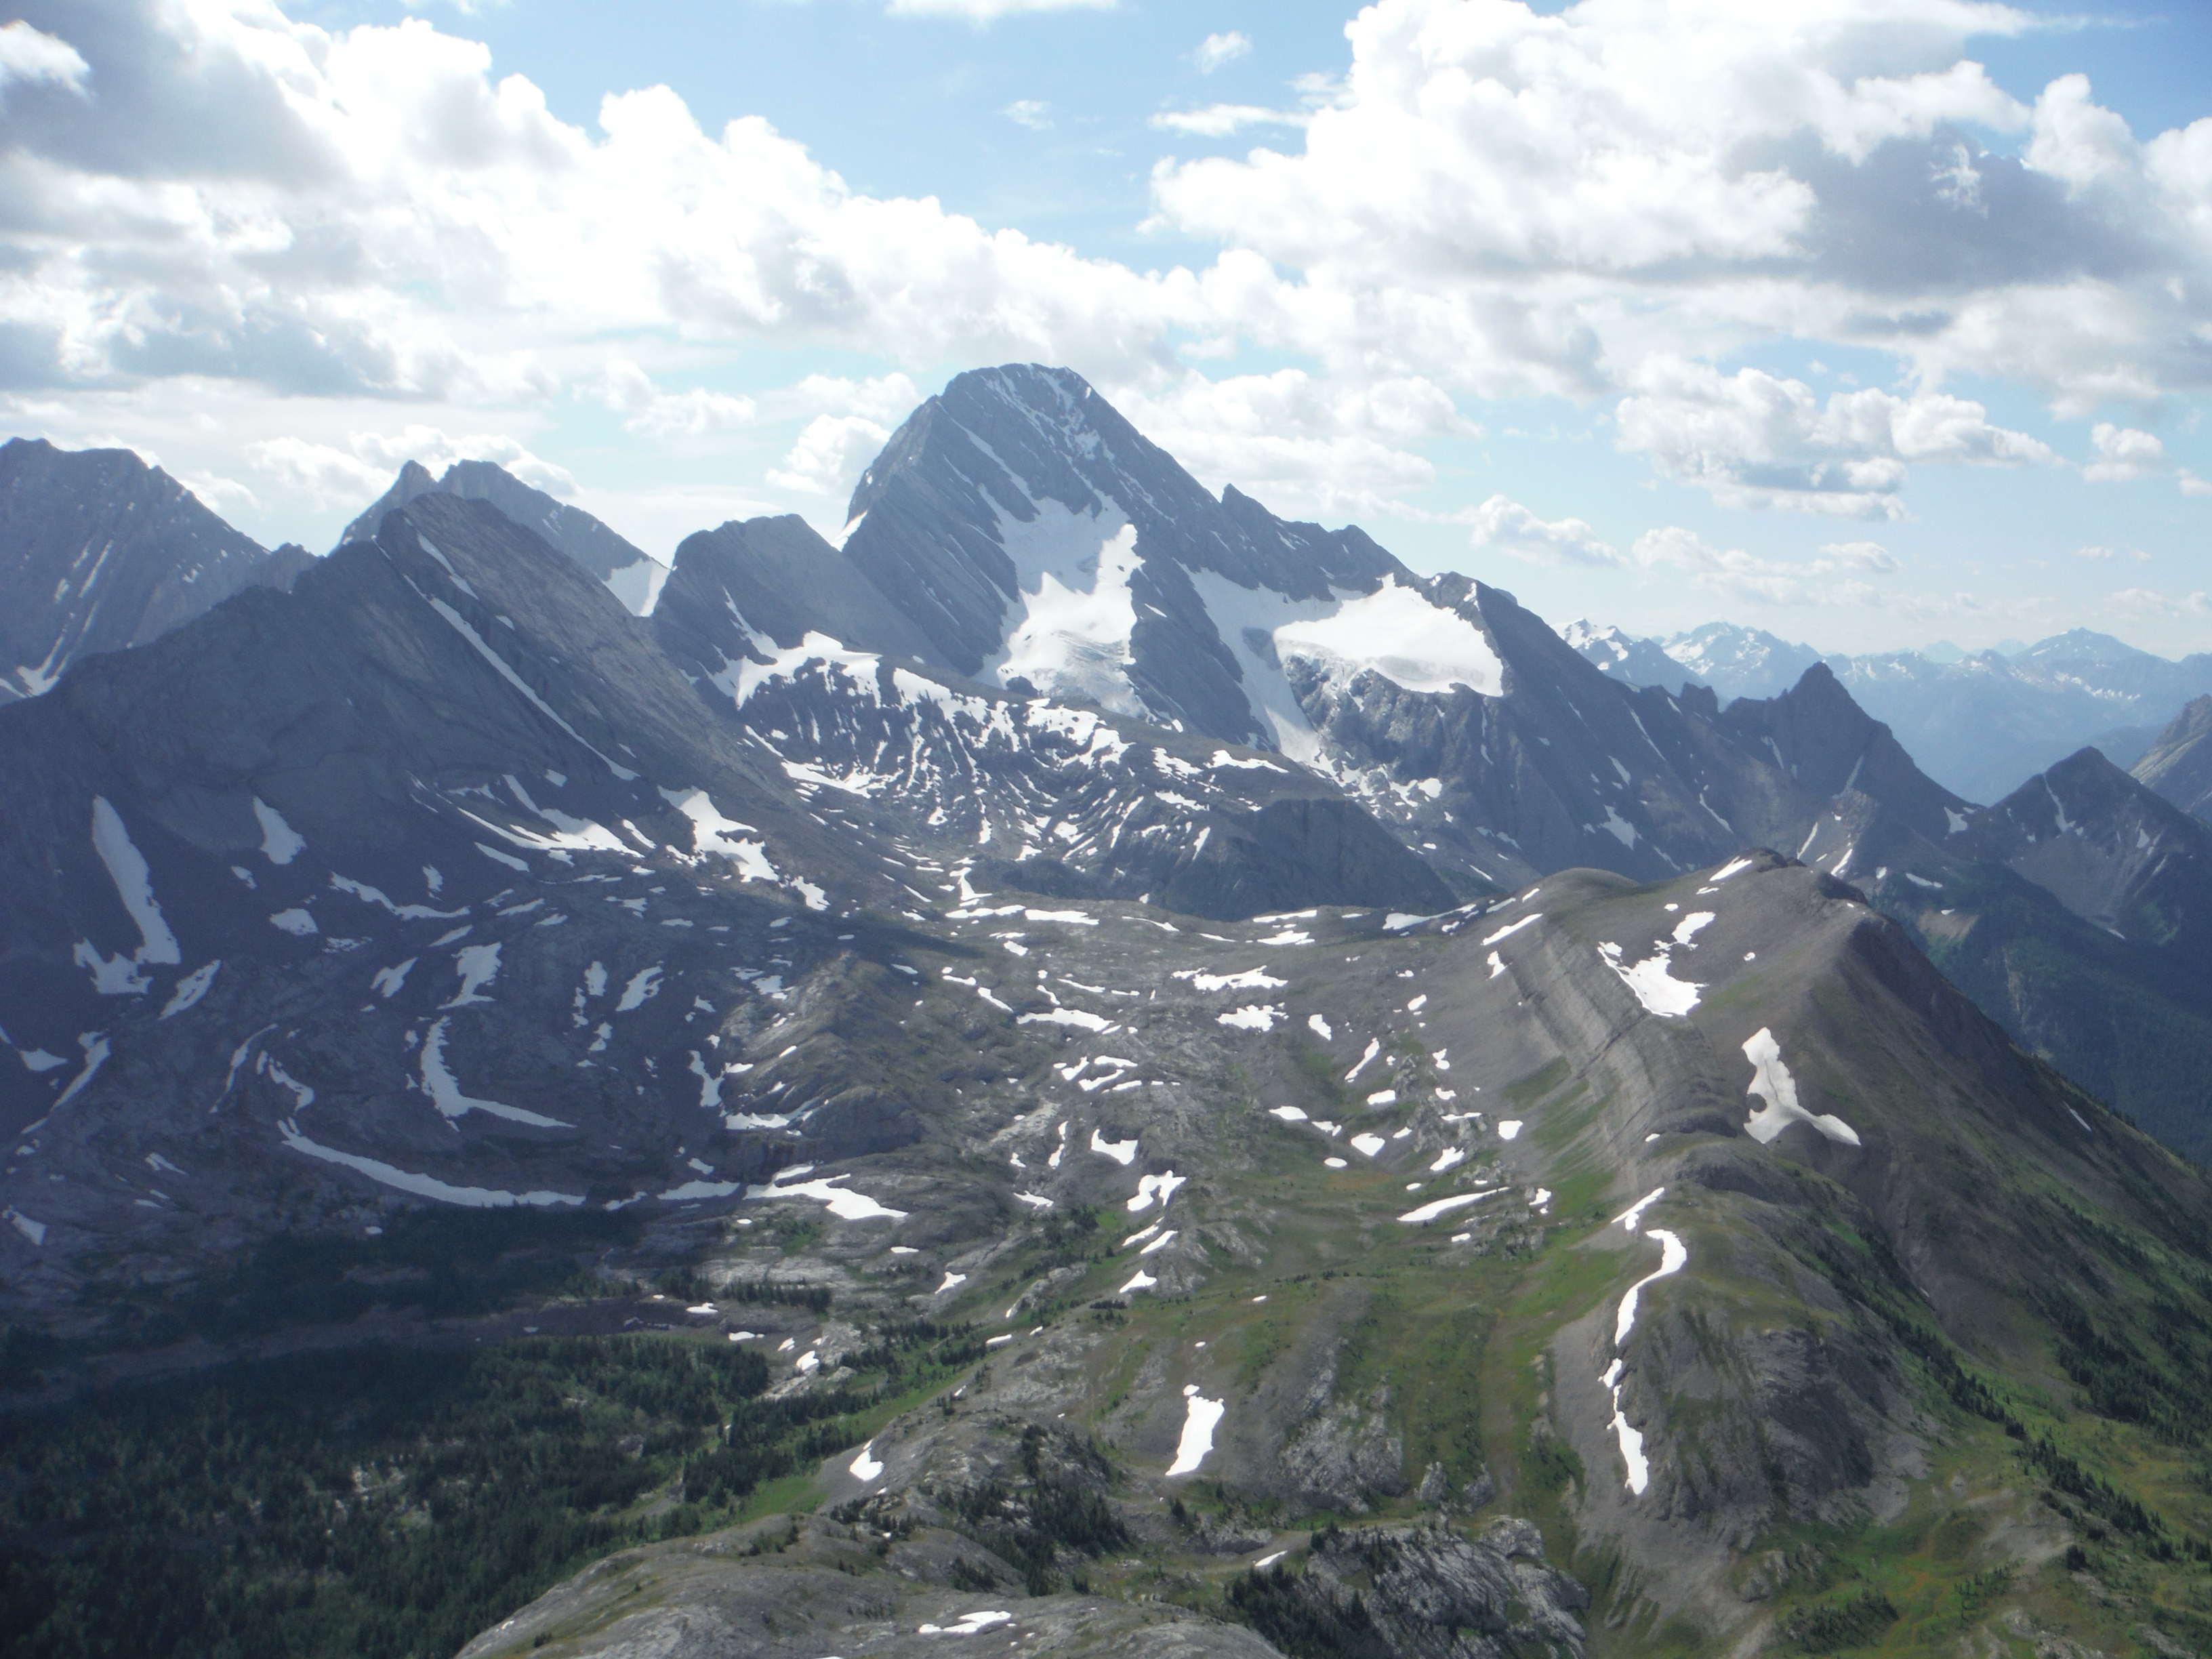 Mt. Sir Douglas Snow Peak Whistling Rock Ridge Burstall Pass Peak Kananaskis Mt. Robertson